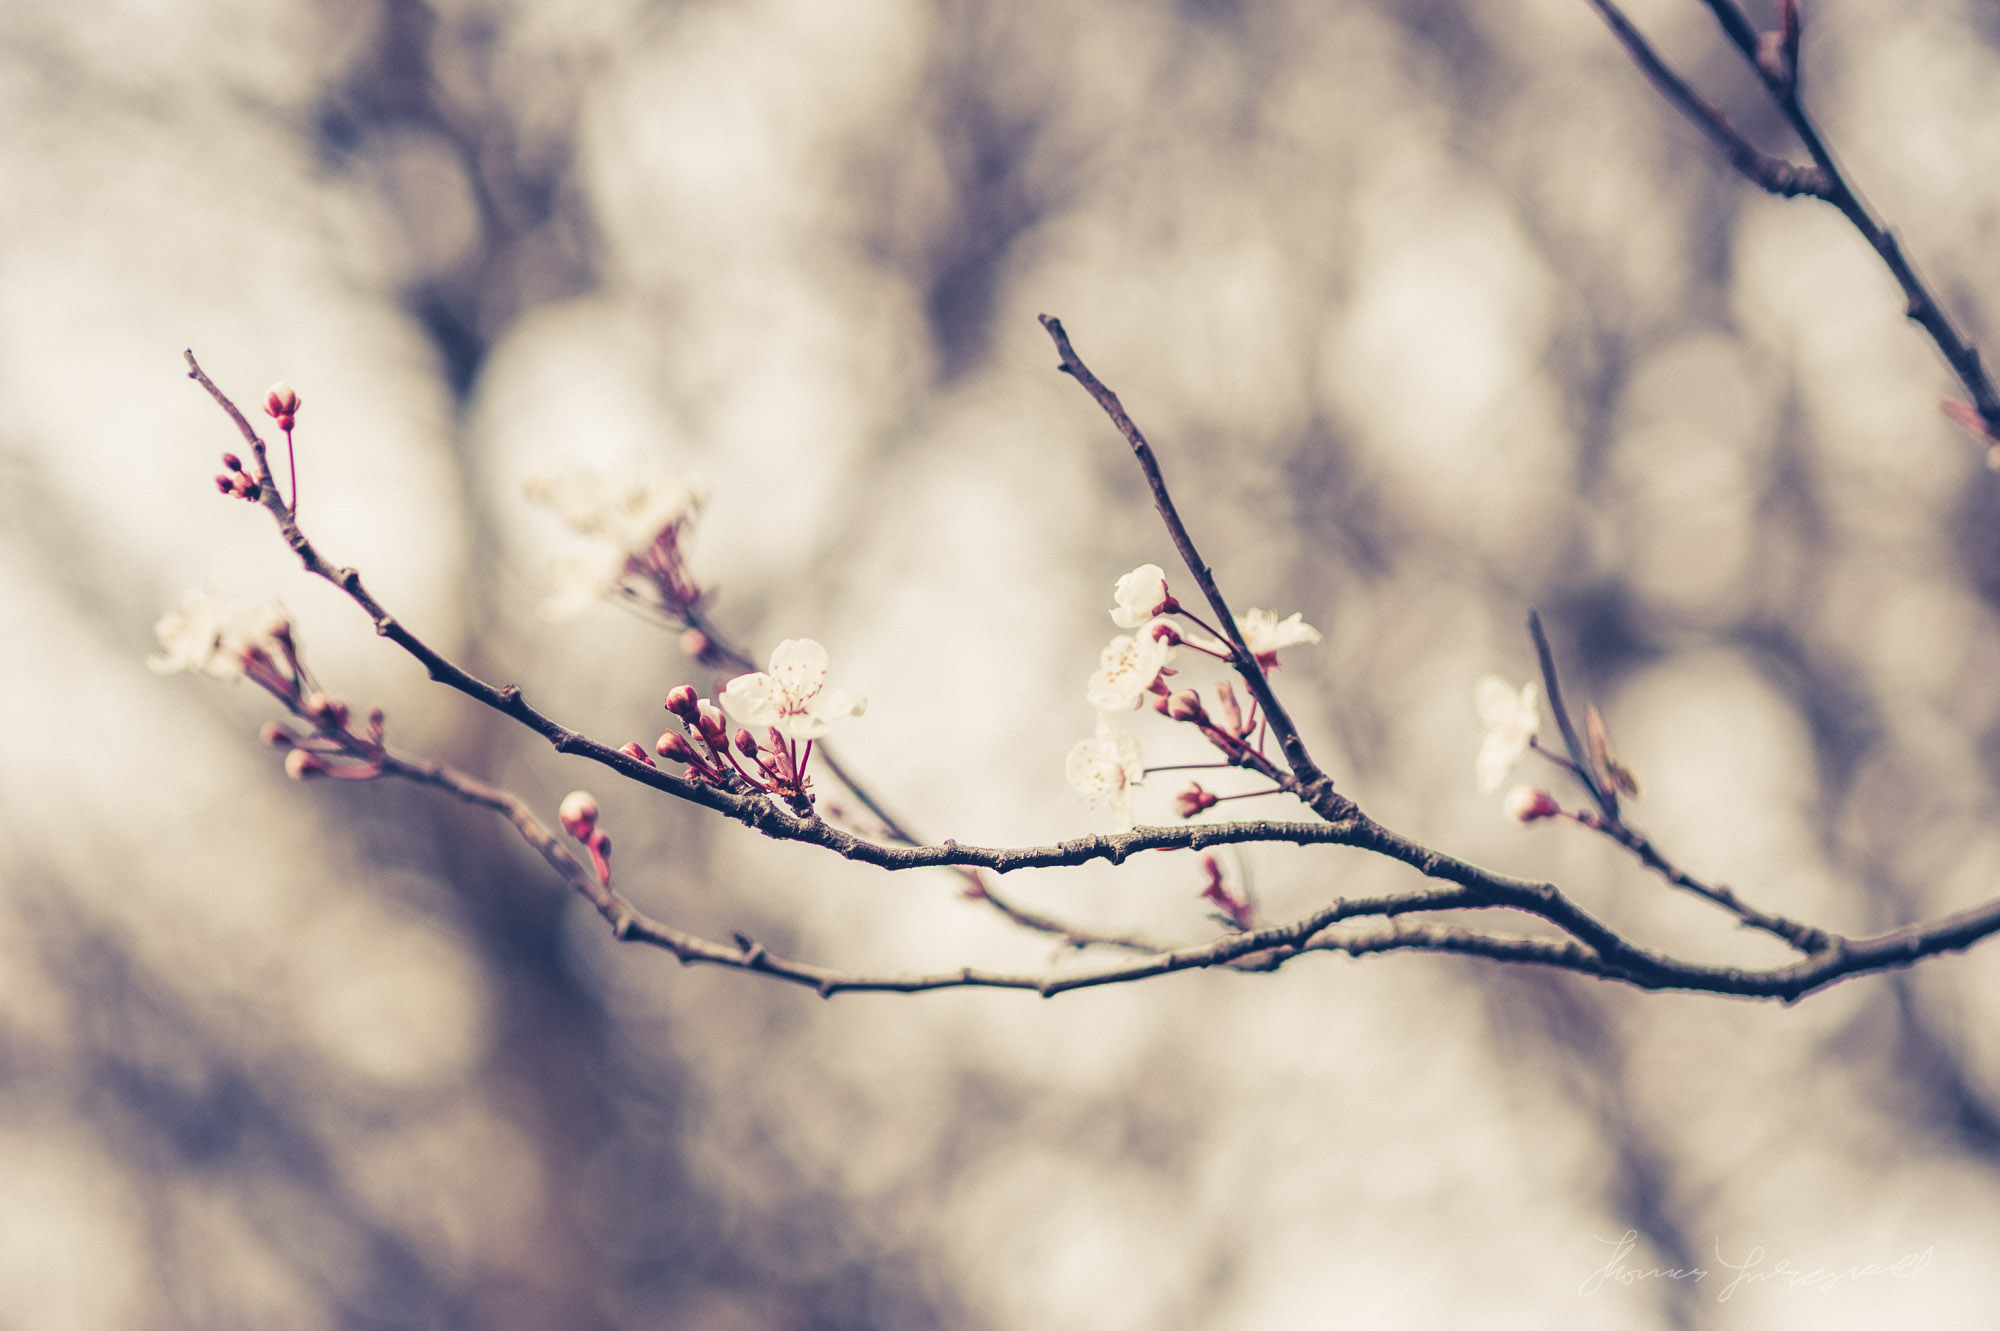 Cherry Blossom Buds beginning to Bloom - Graded with Film Candy for Lightroom